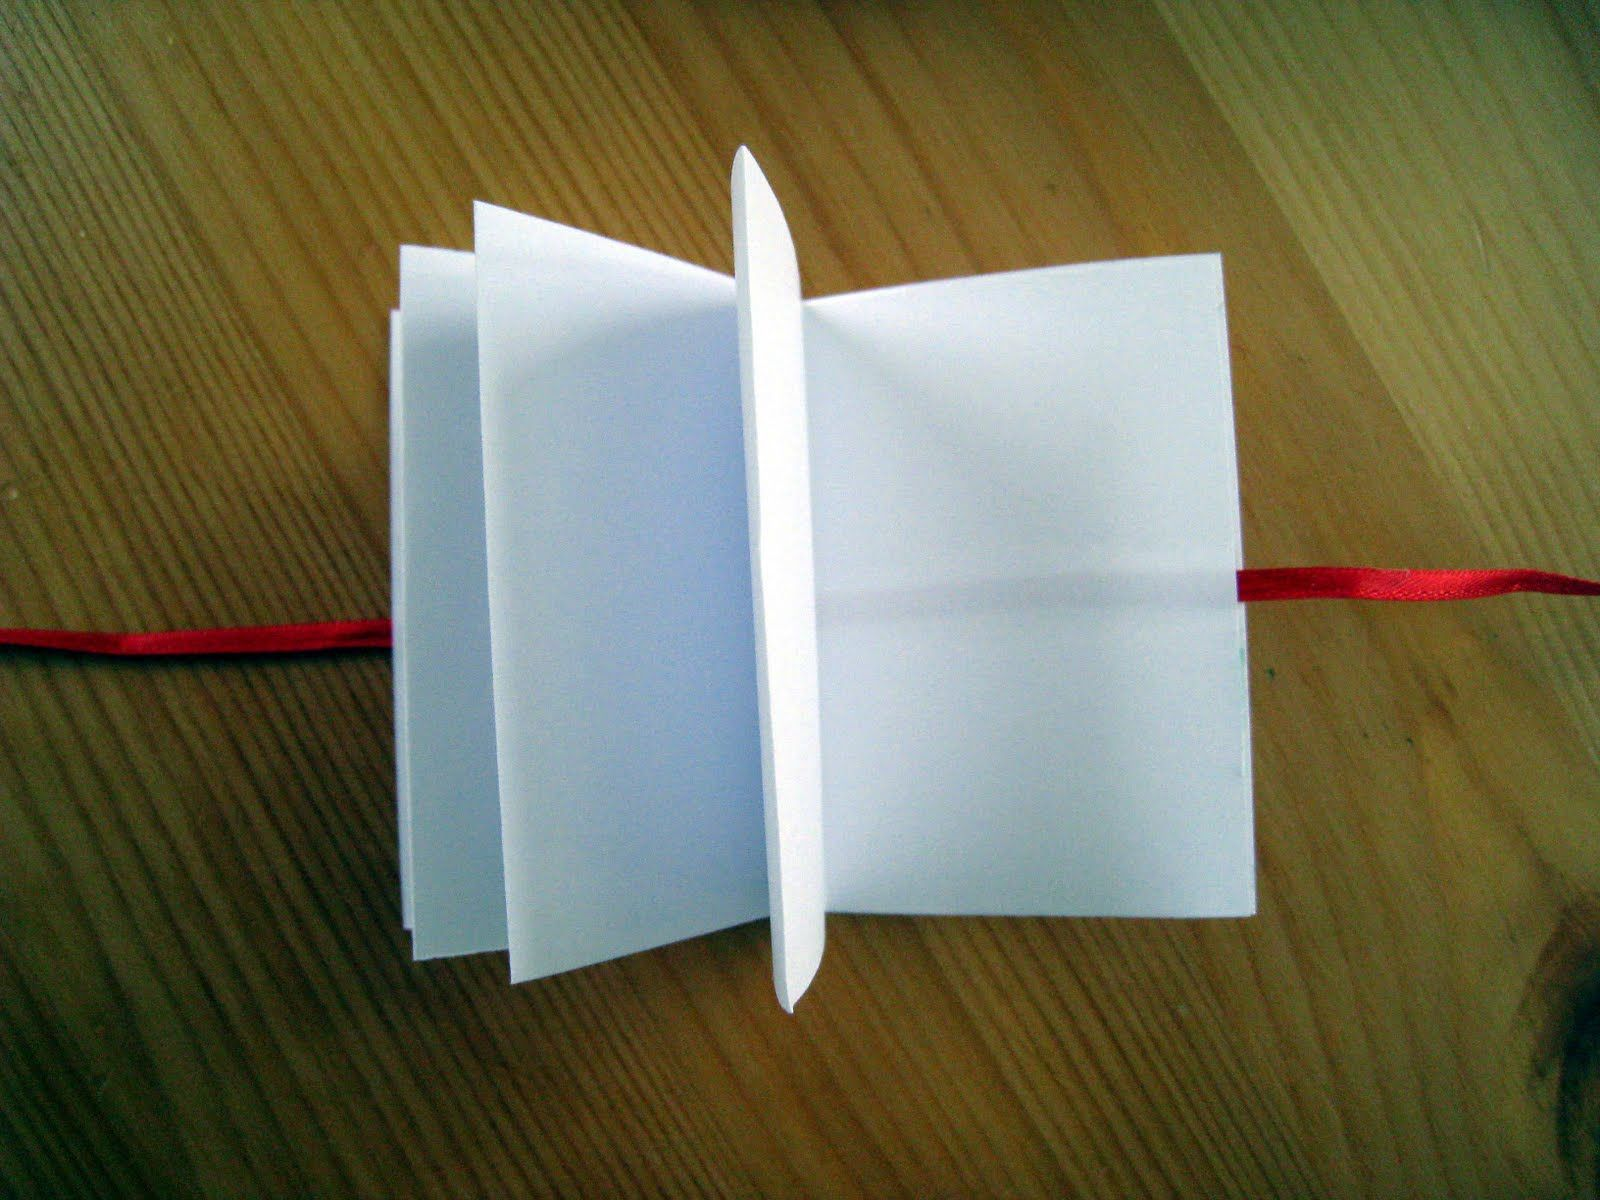 Easy Bookbinding For Kids How To Make Three Different Rubber Band Books The Kitchen Table Classroom In 2020 Book Making Book Binding Diy Book